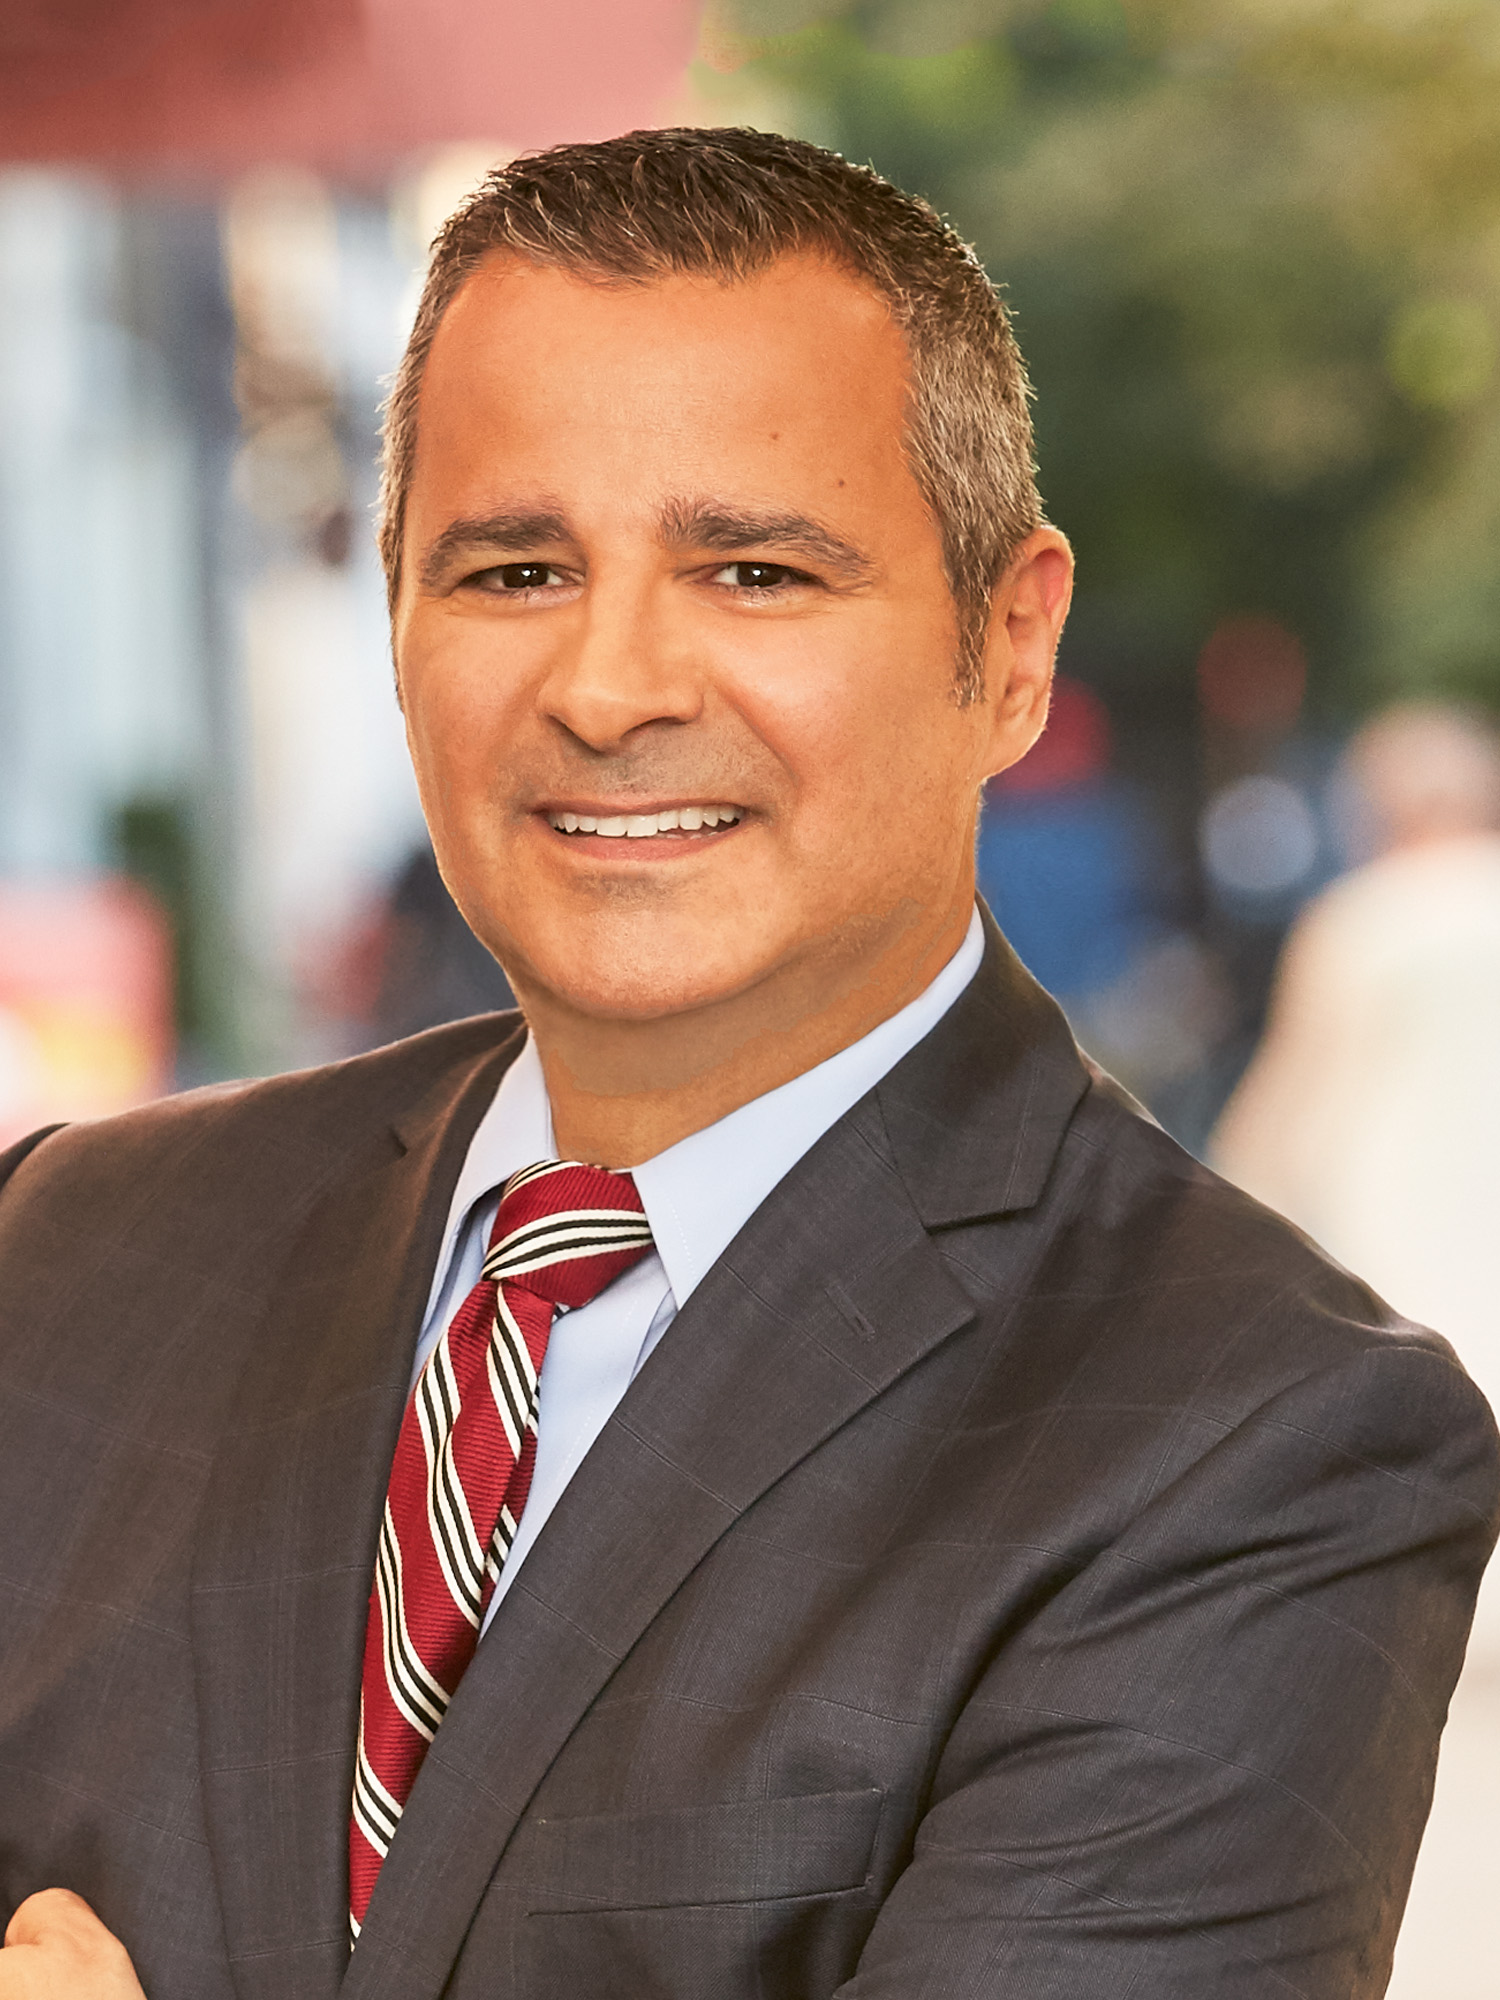 Nicholas Athanail, a top realtor in New York City for Corcoran, a real estate firm in SoHo.